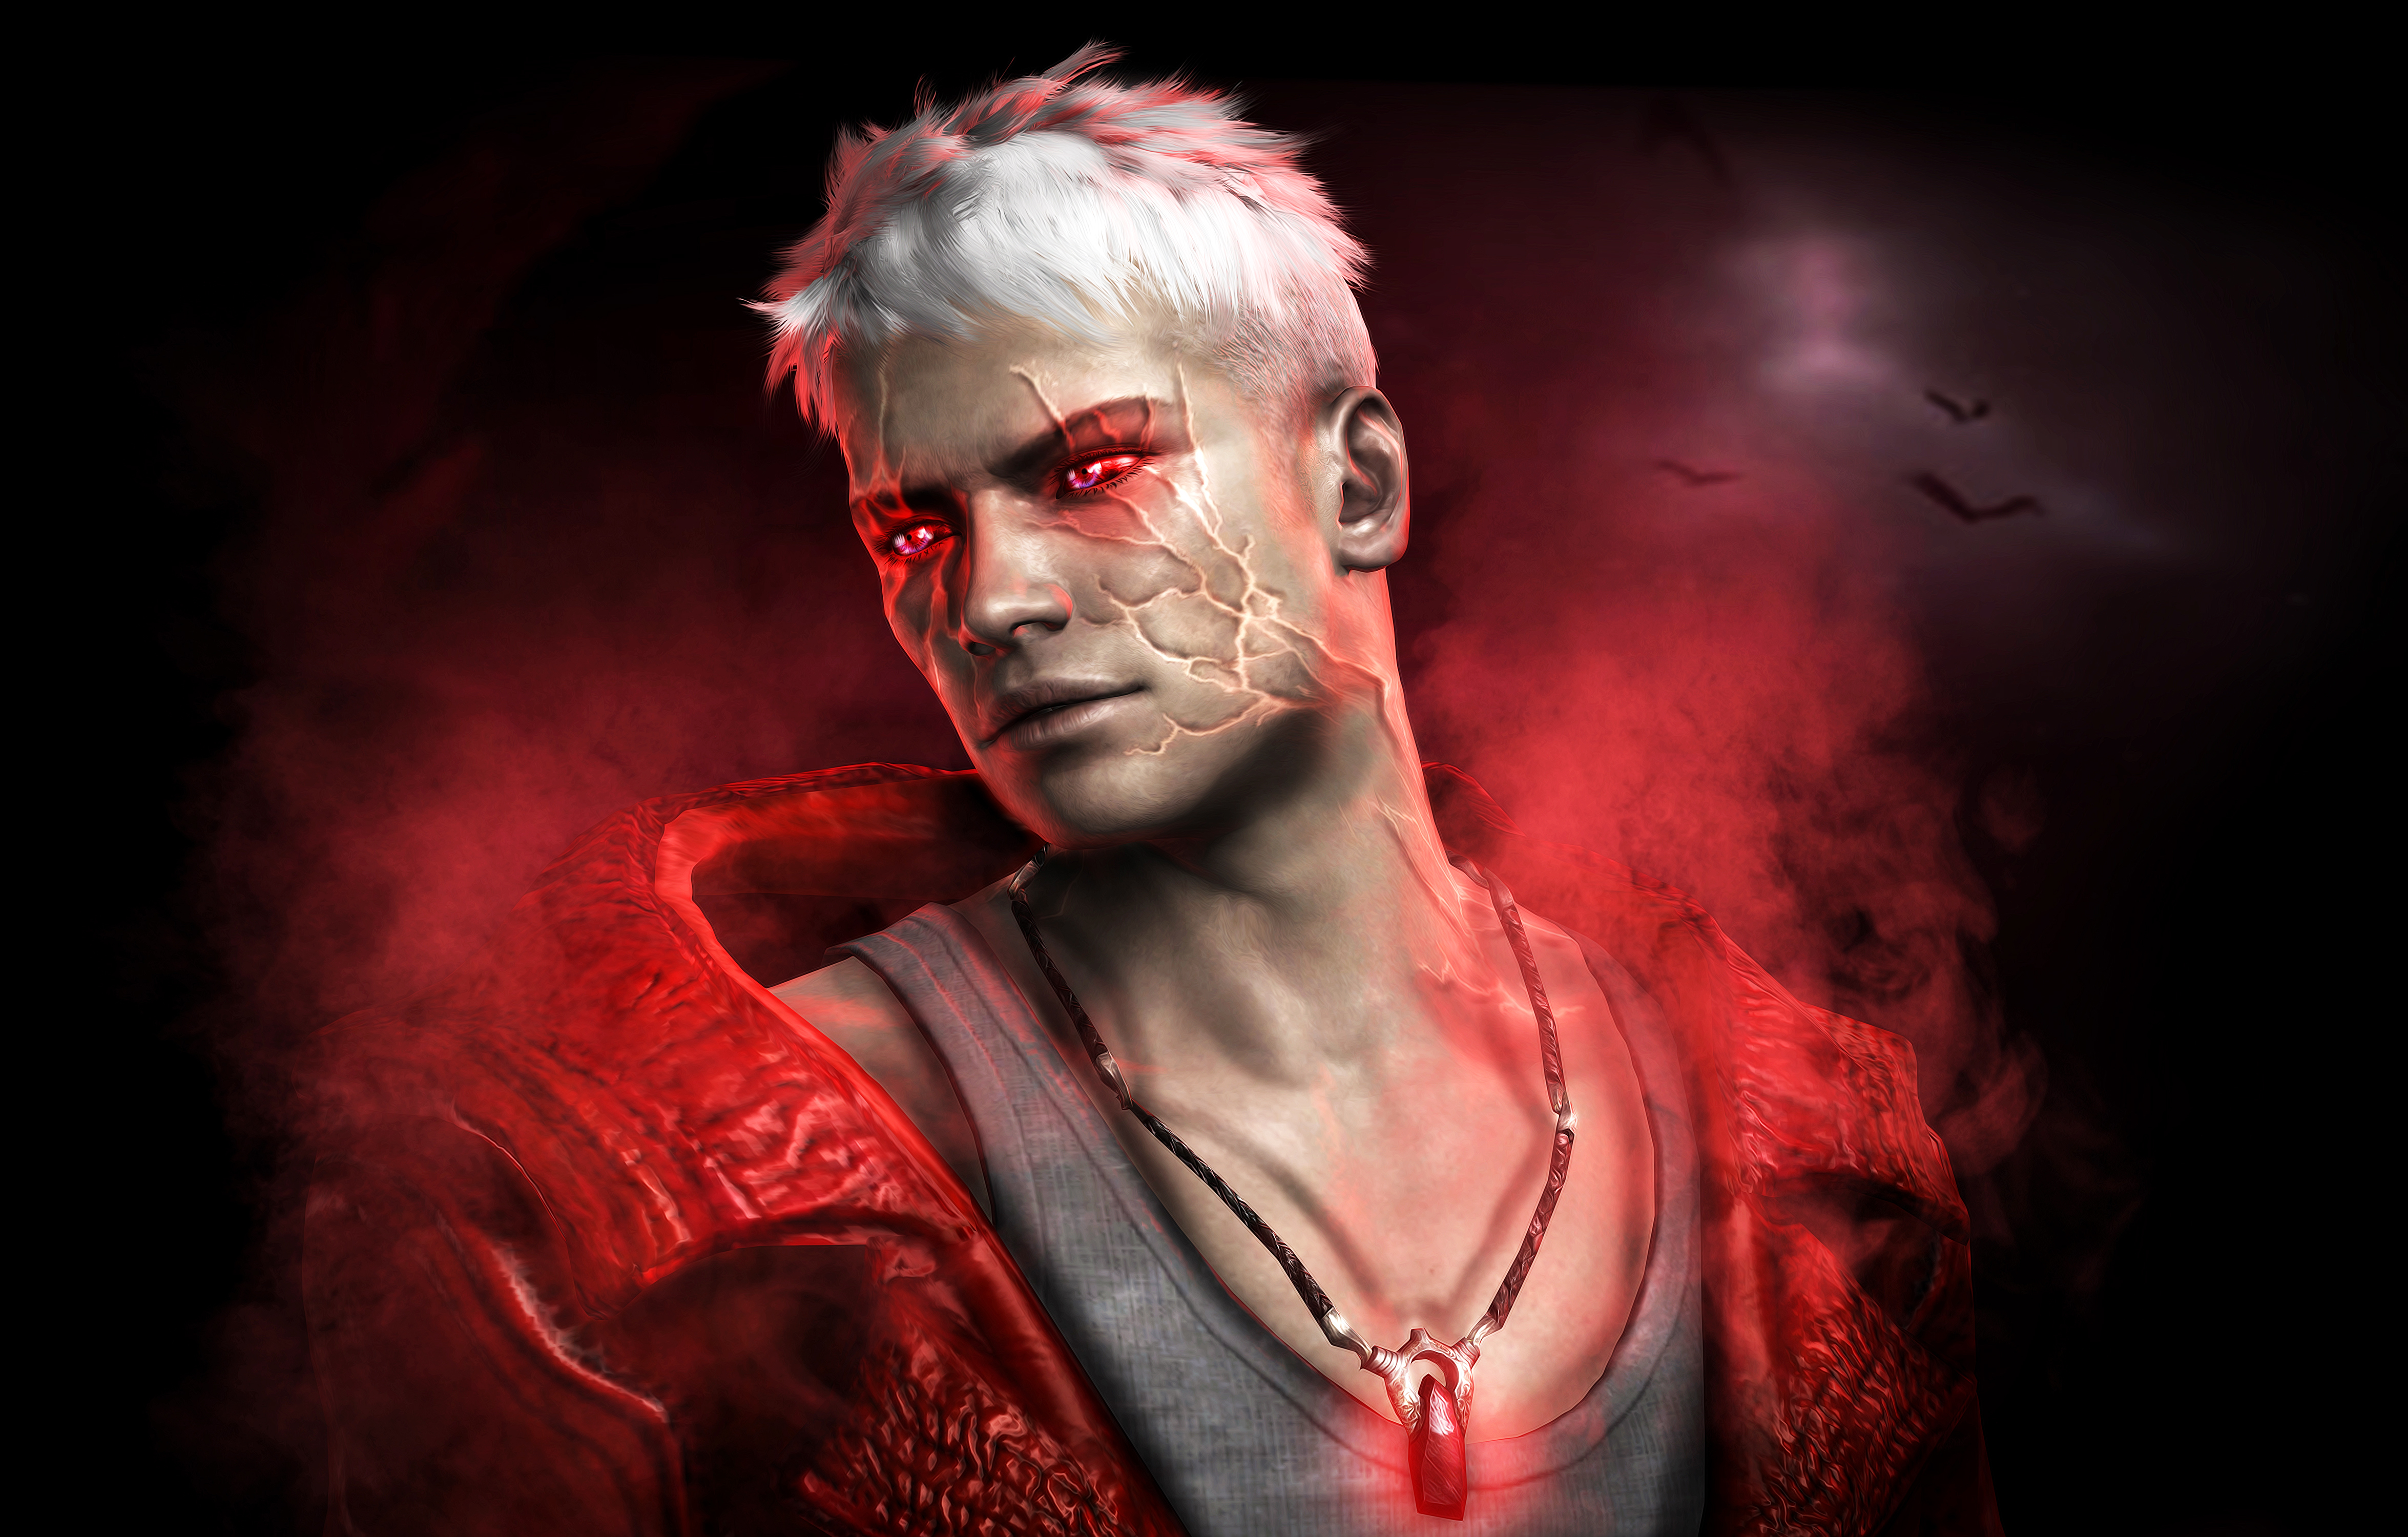 devil may cry dante men game hd wallpaper hd latest wallpapers